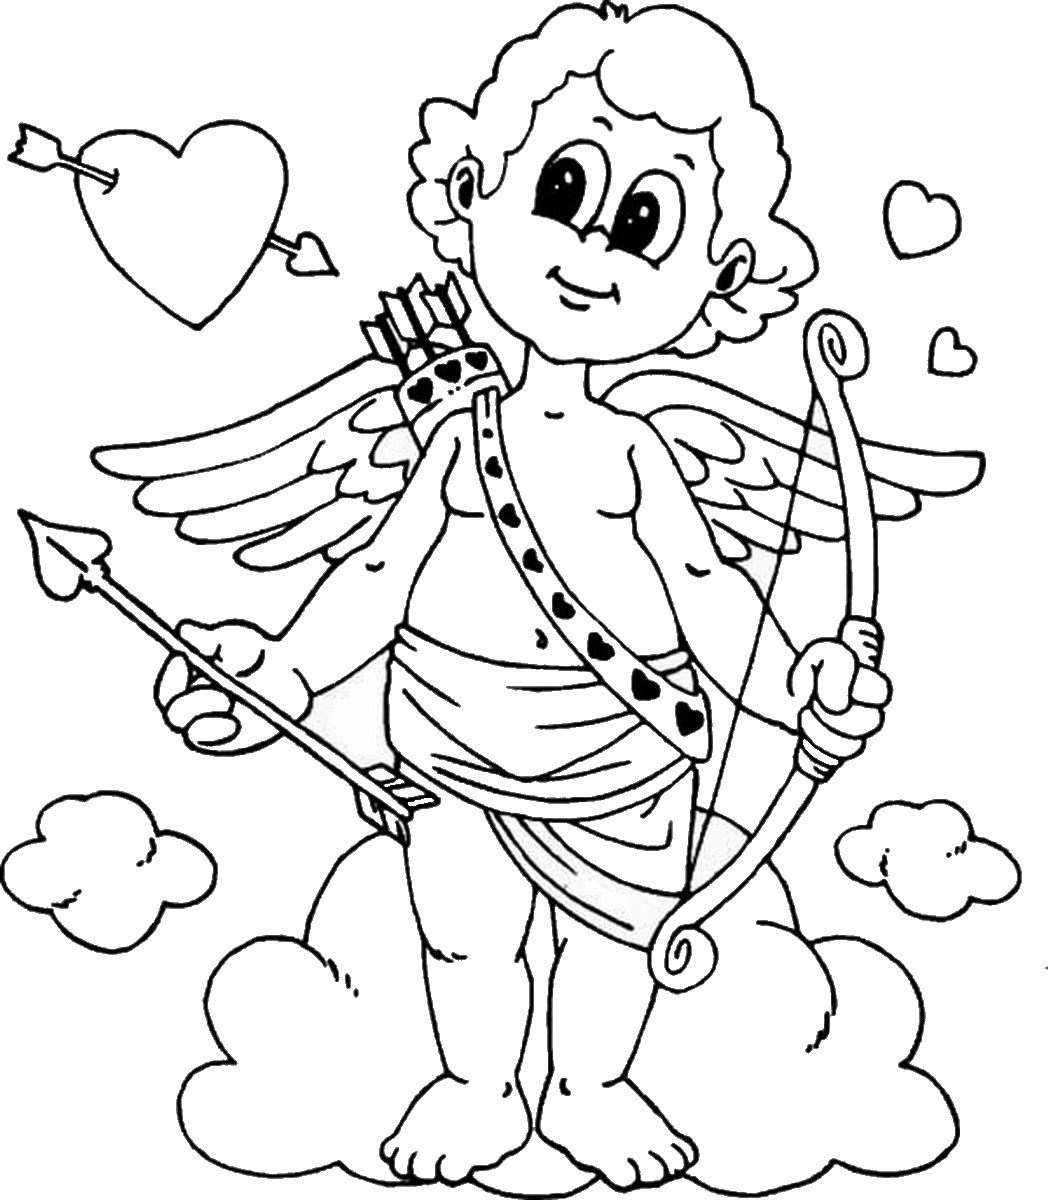 valentine day coloring pages valentine39s day coloring pages gtgt disney coloring pages coloring day valentine pages